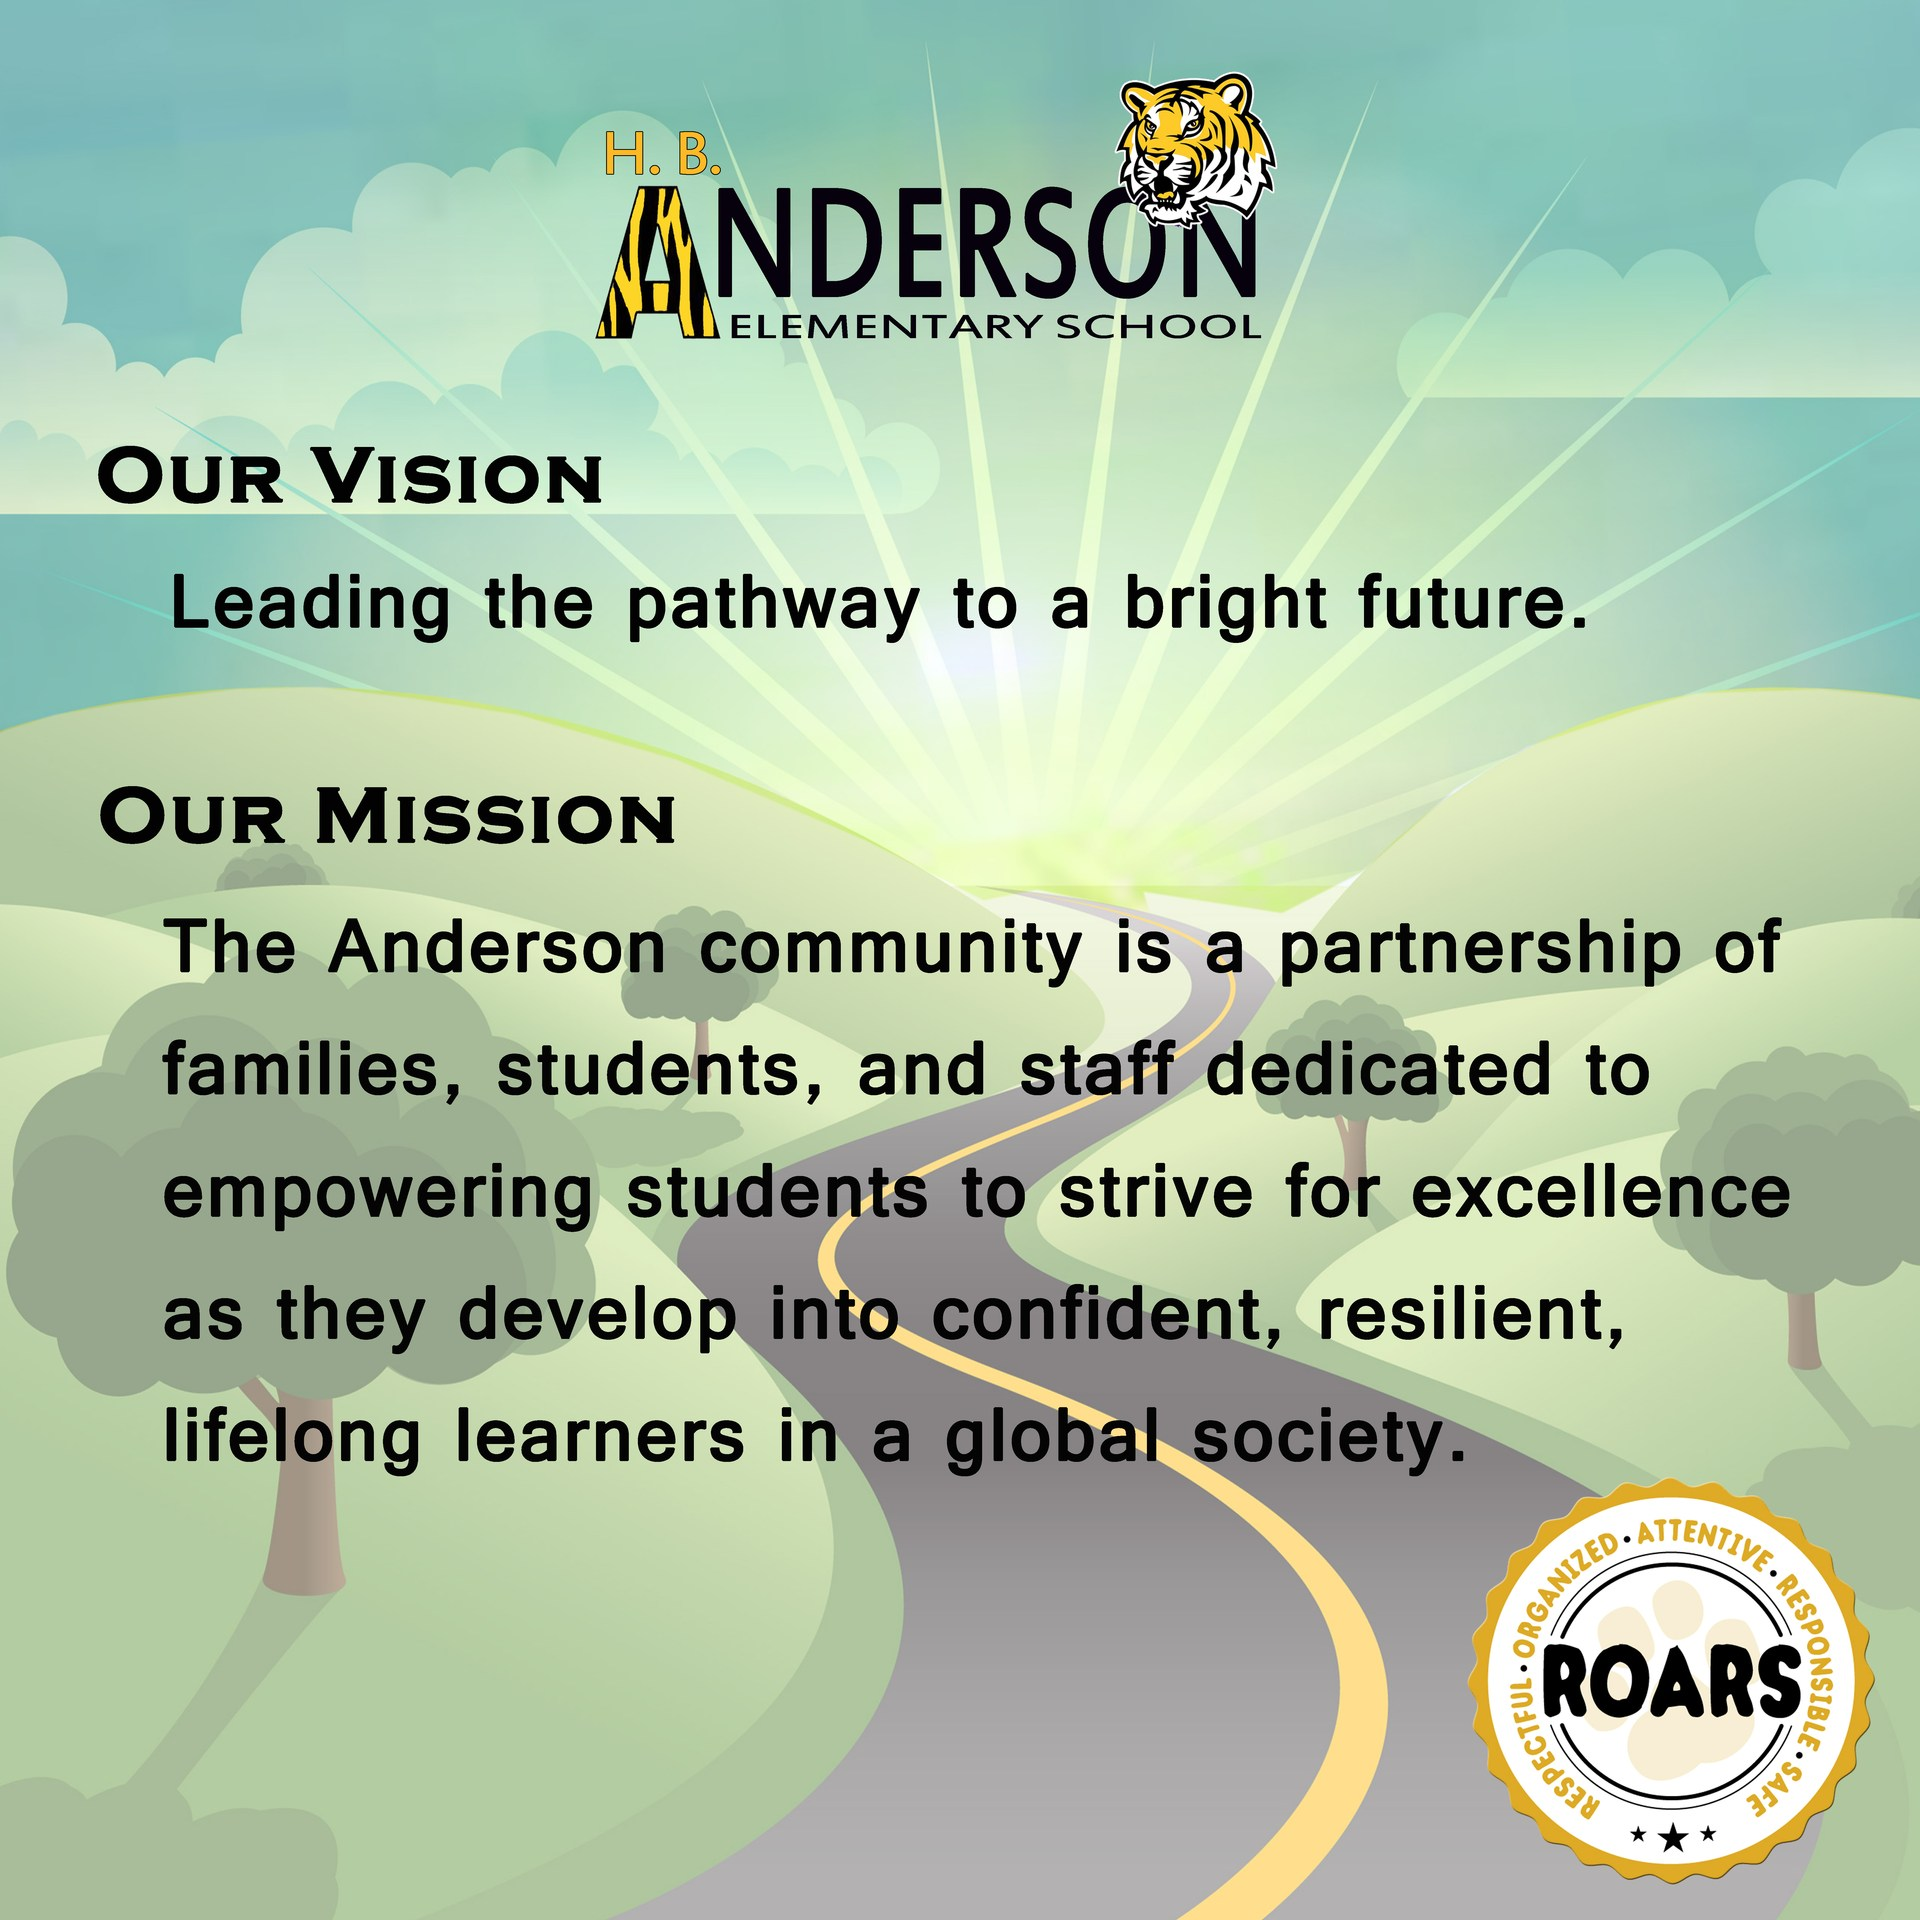 The Anderson Vision and Mission are decorated with a background of a road going towards a bright sun